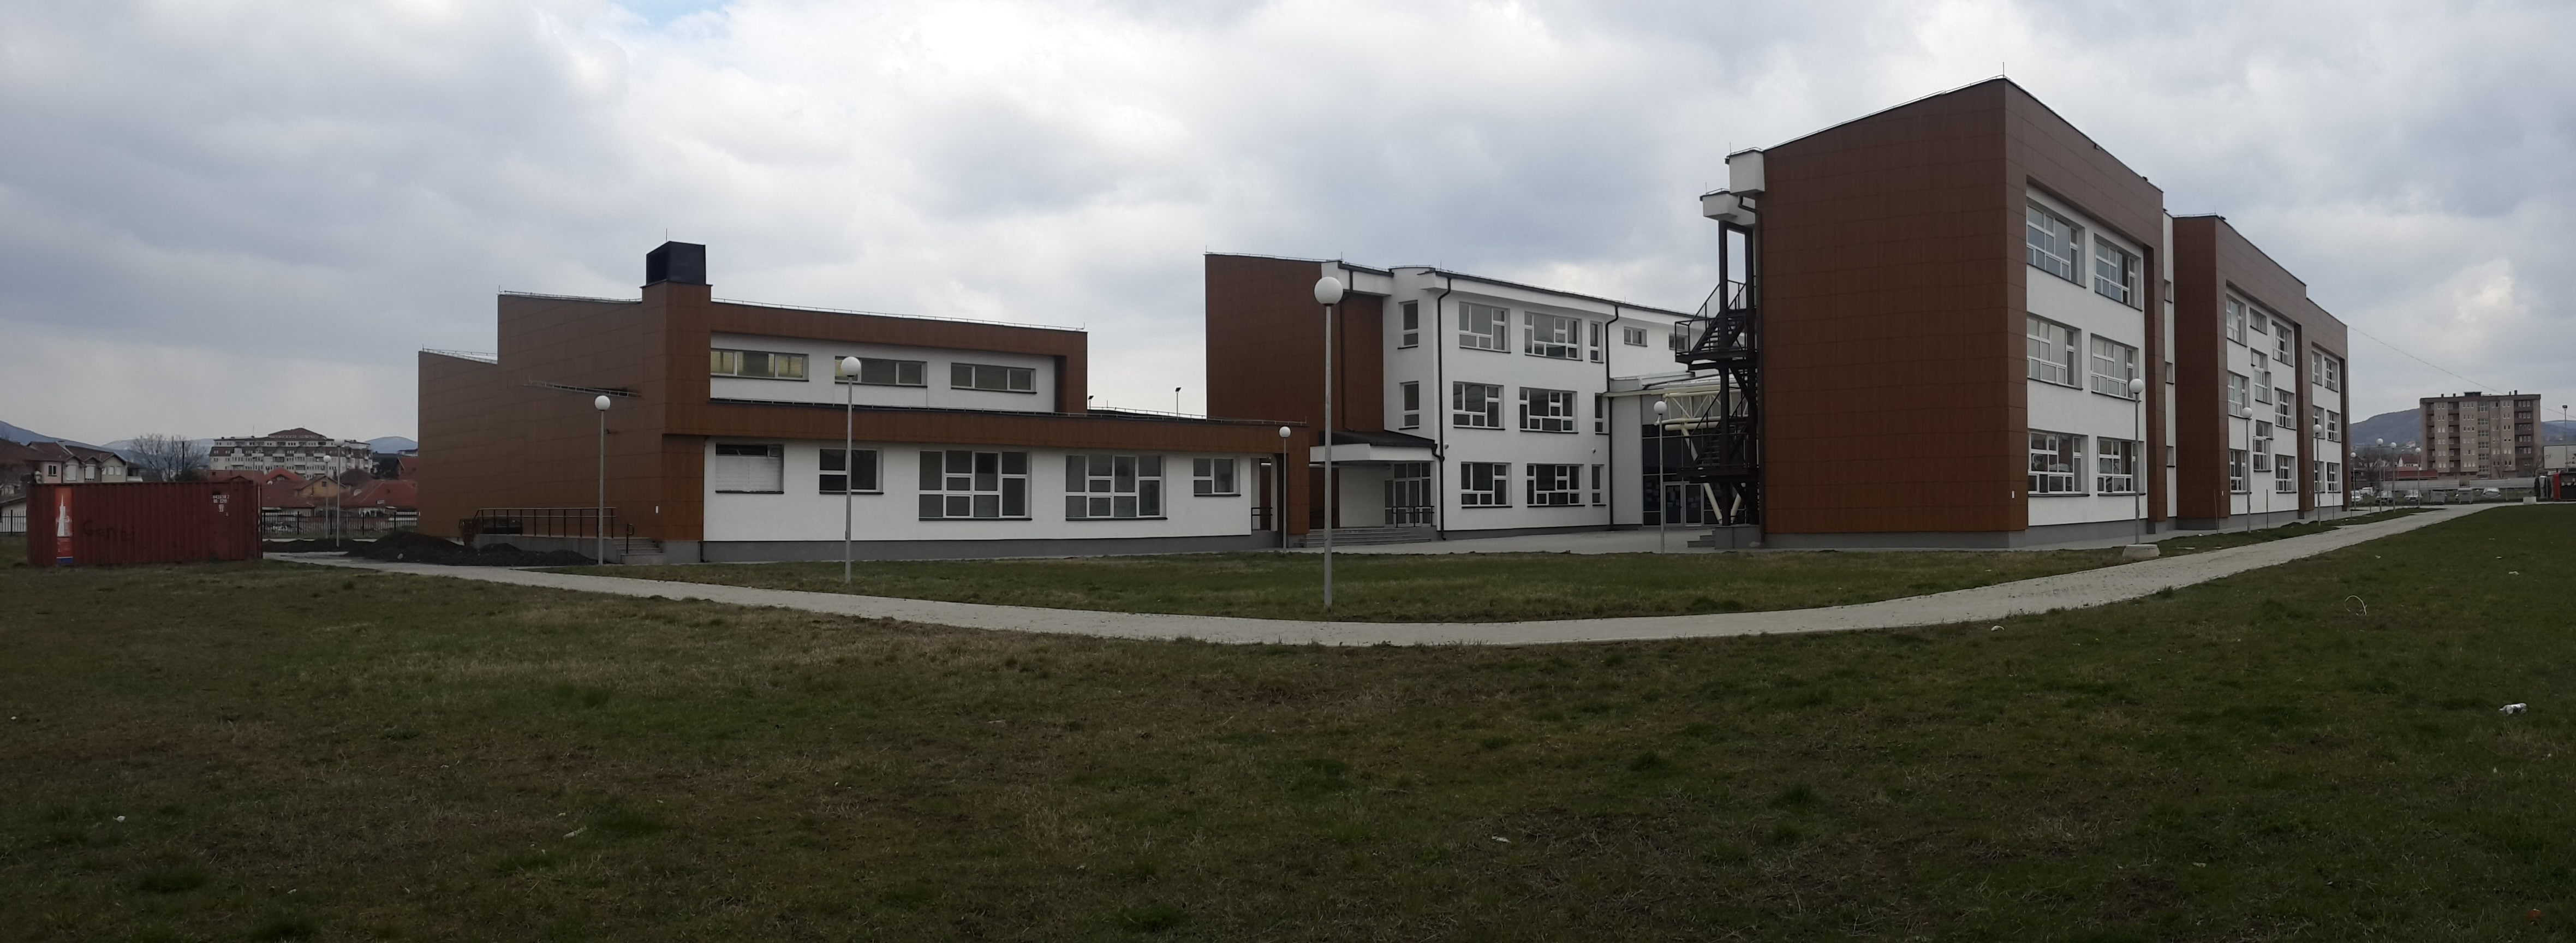 Construction of the High School in Vushtrri